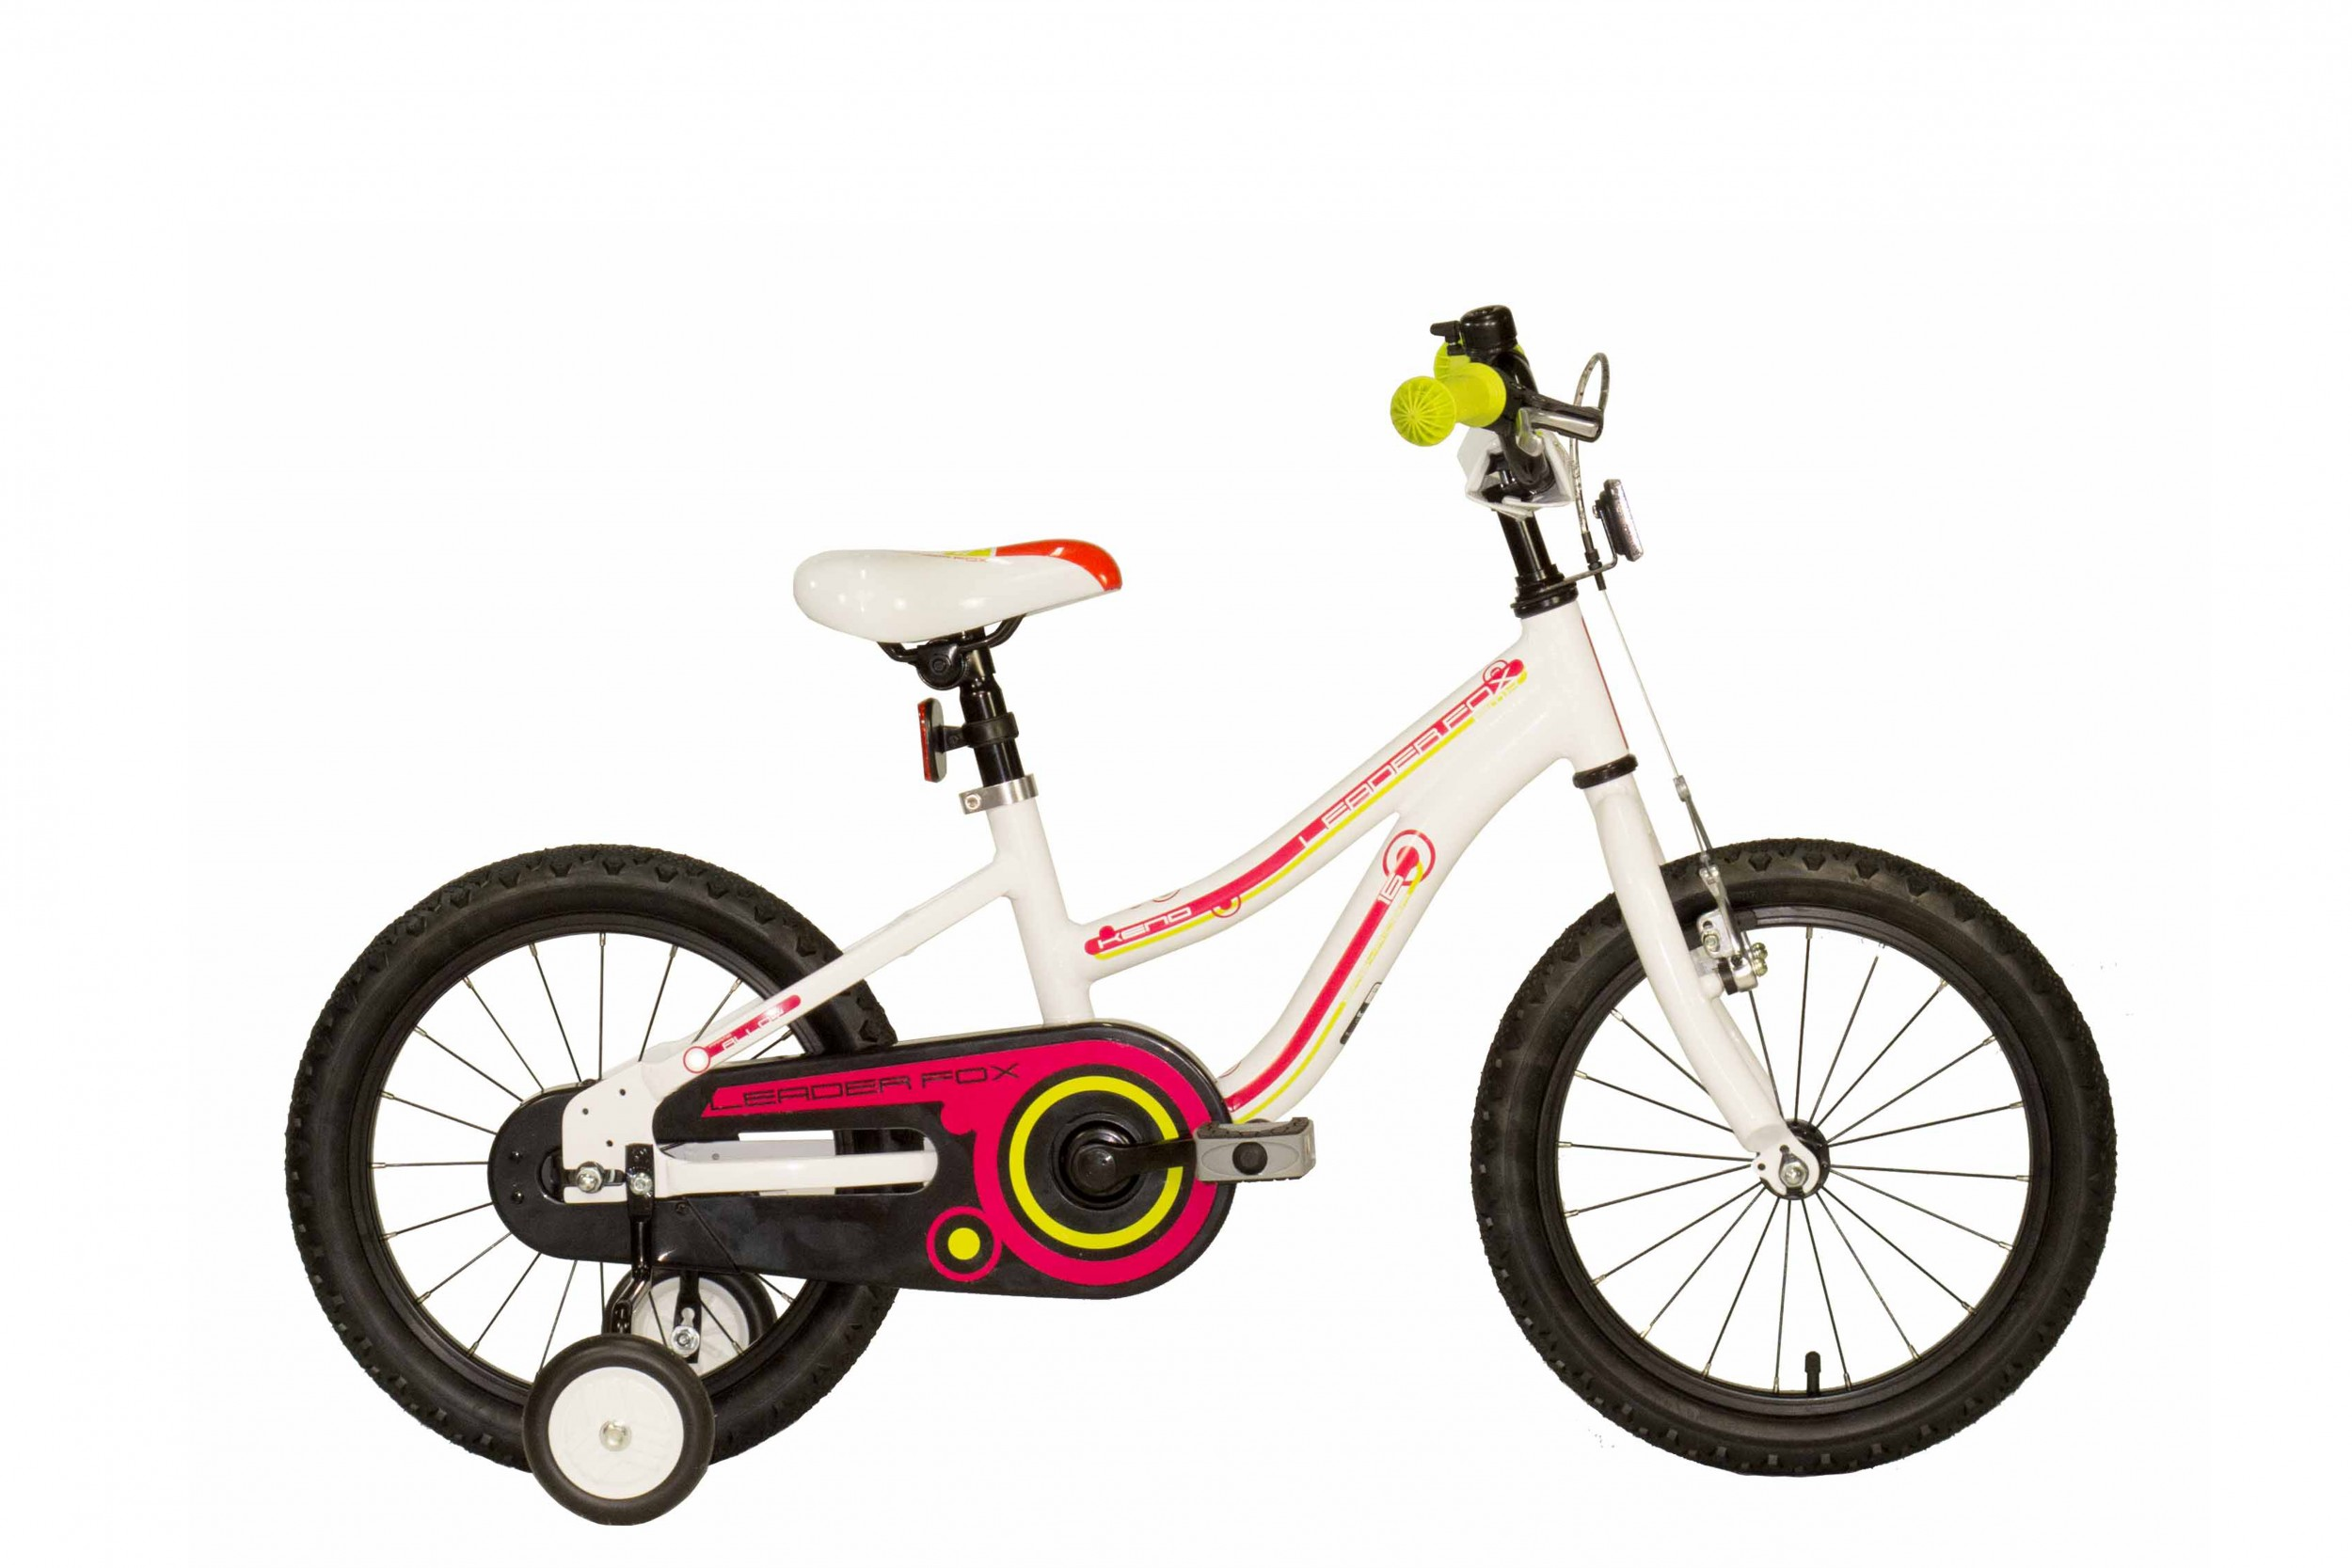 Leader Fox Keno Girls Bicycle 16 Inch 23cm - White